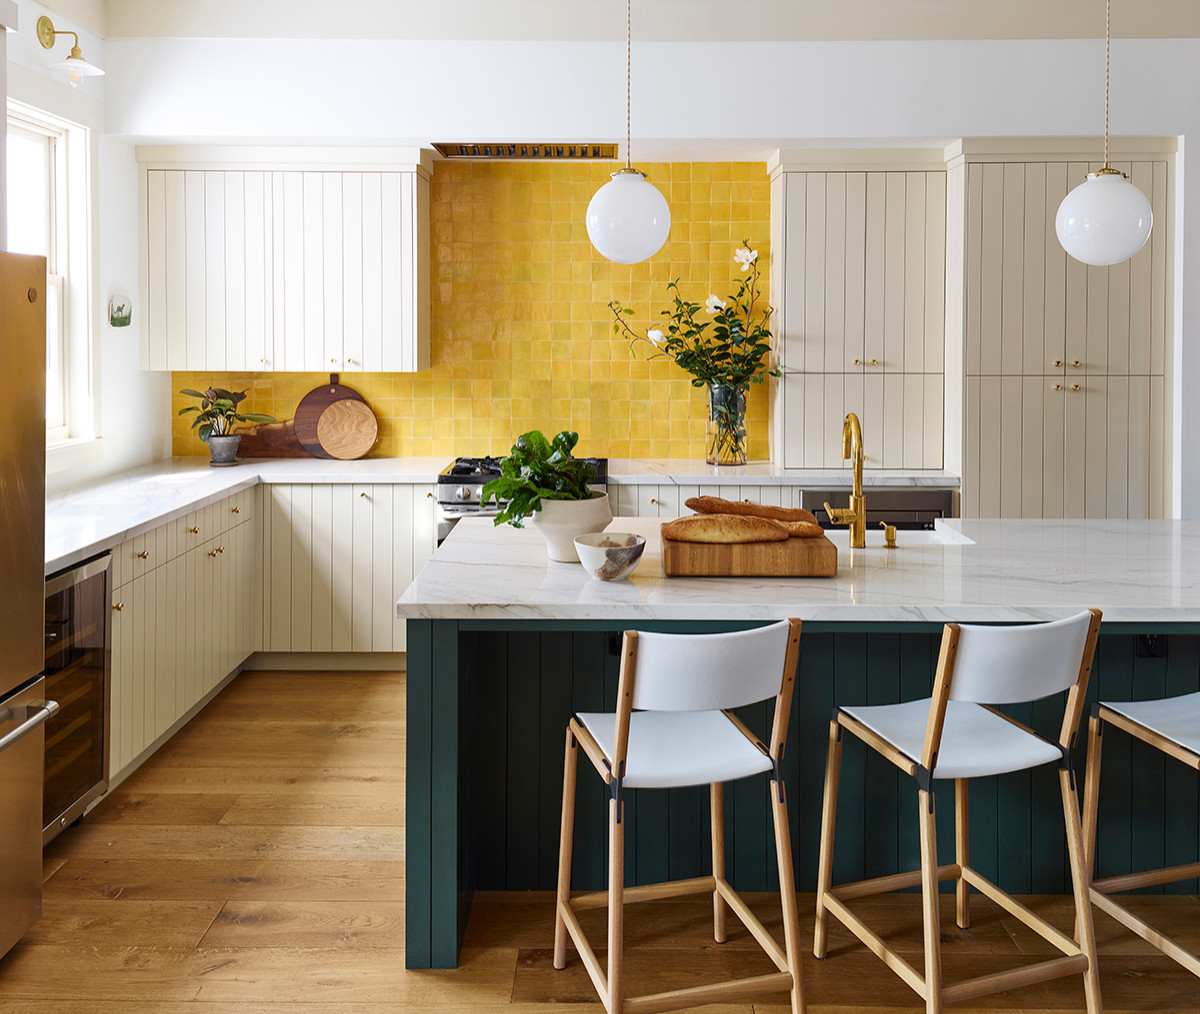 Handmade yellow backsplash in the kitchen coupled with deep and dark green island for a charismatic new look